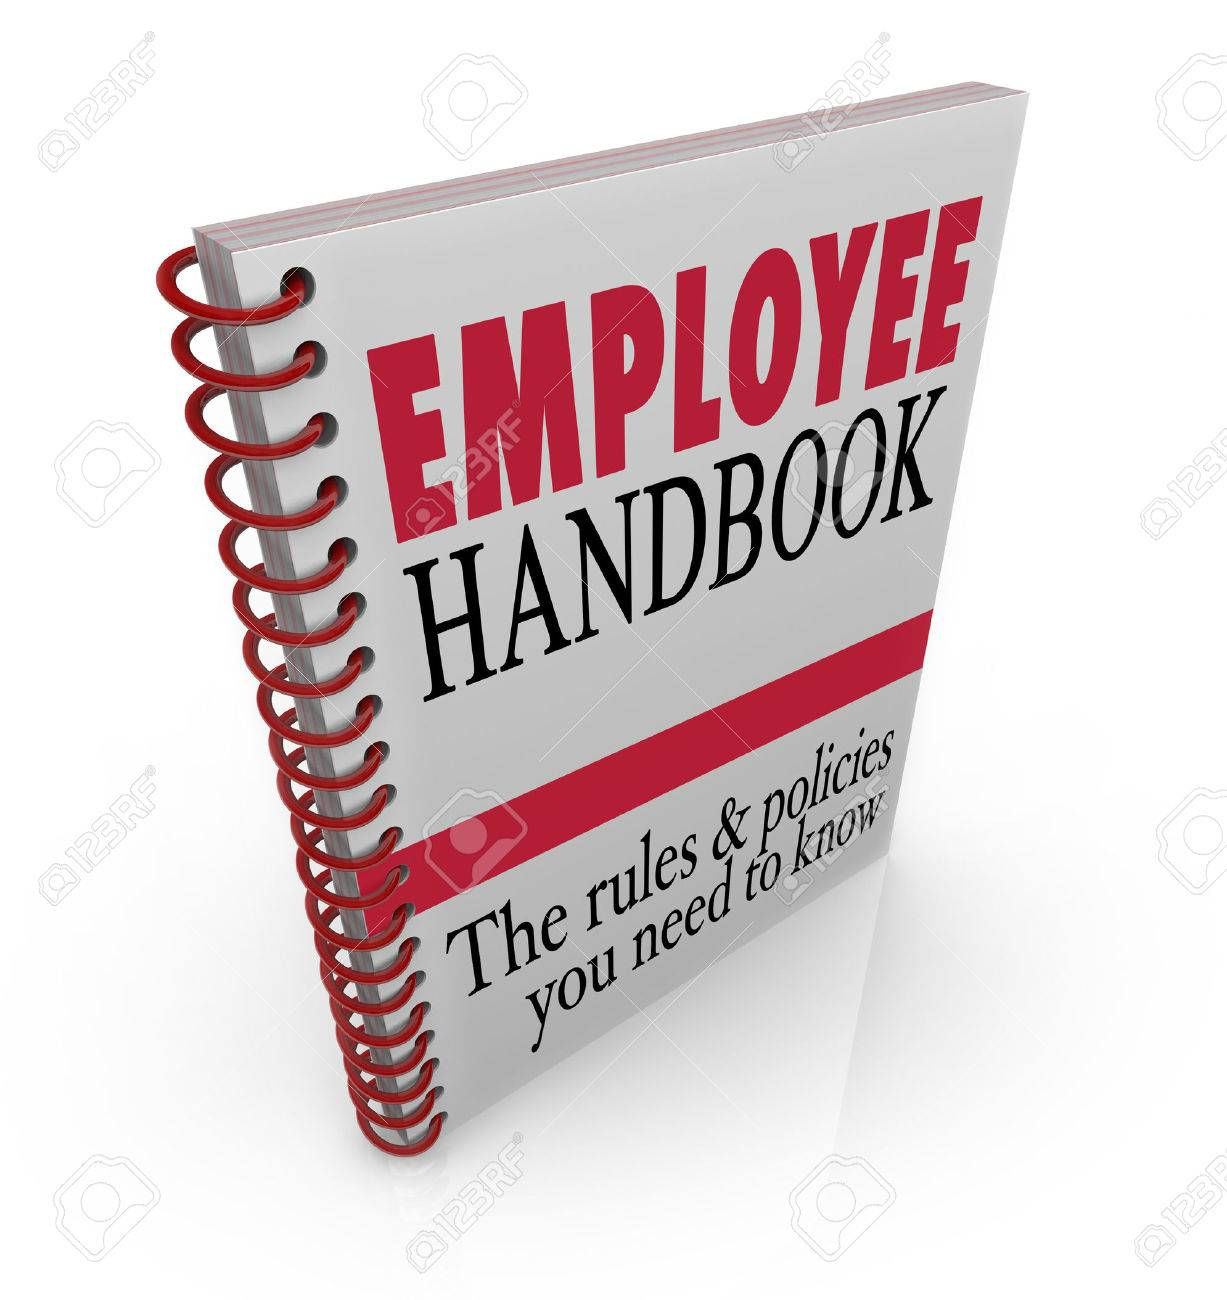 Employee Handbook Words On A Book Cover To Illustrate Policies ...